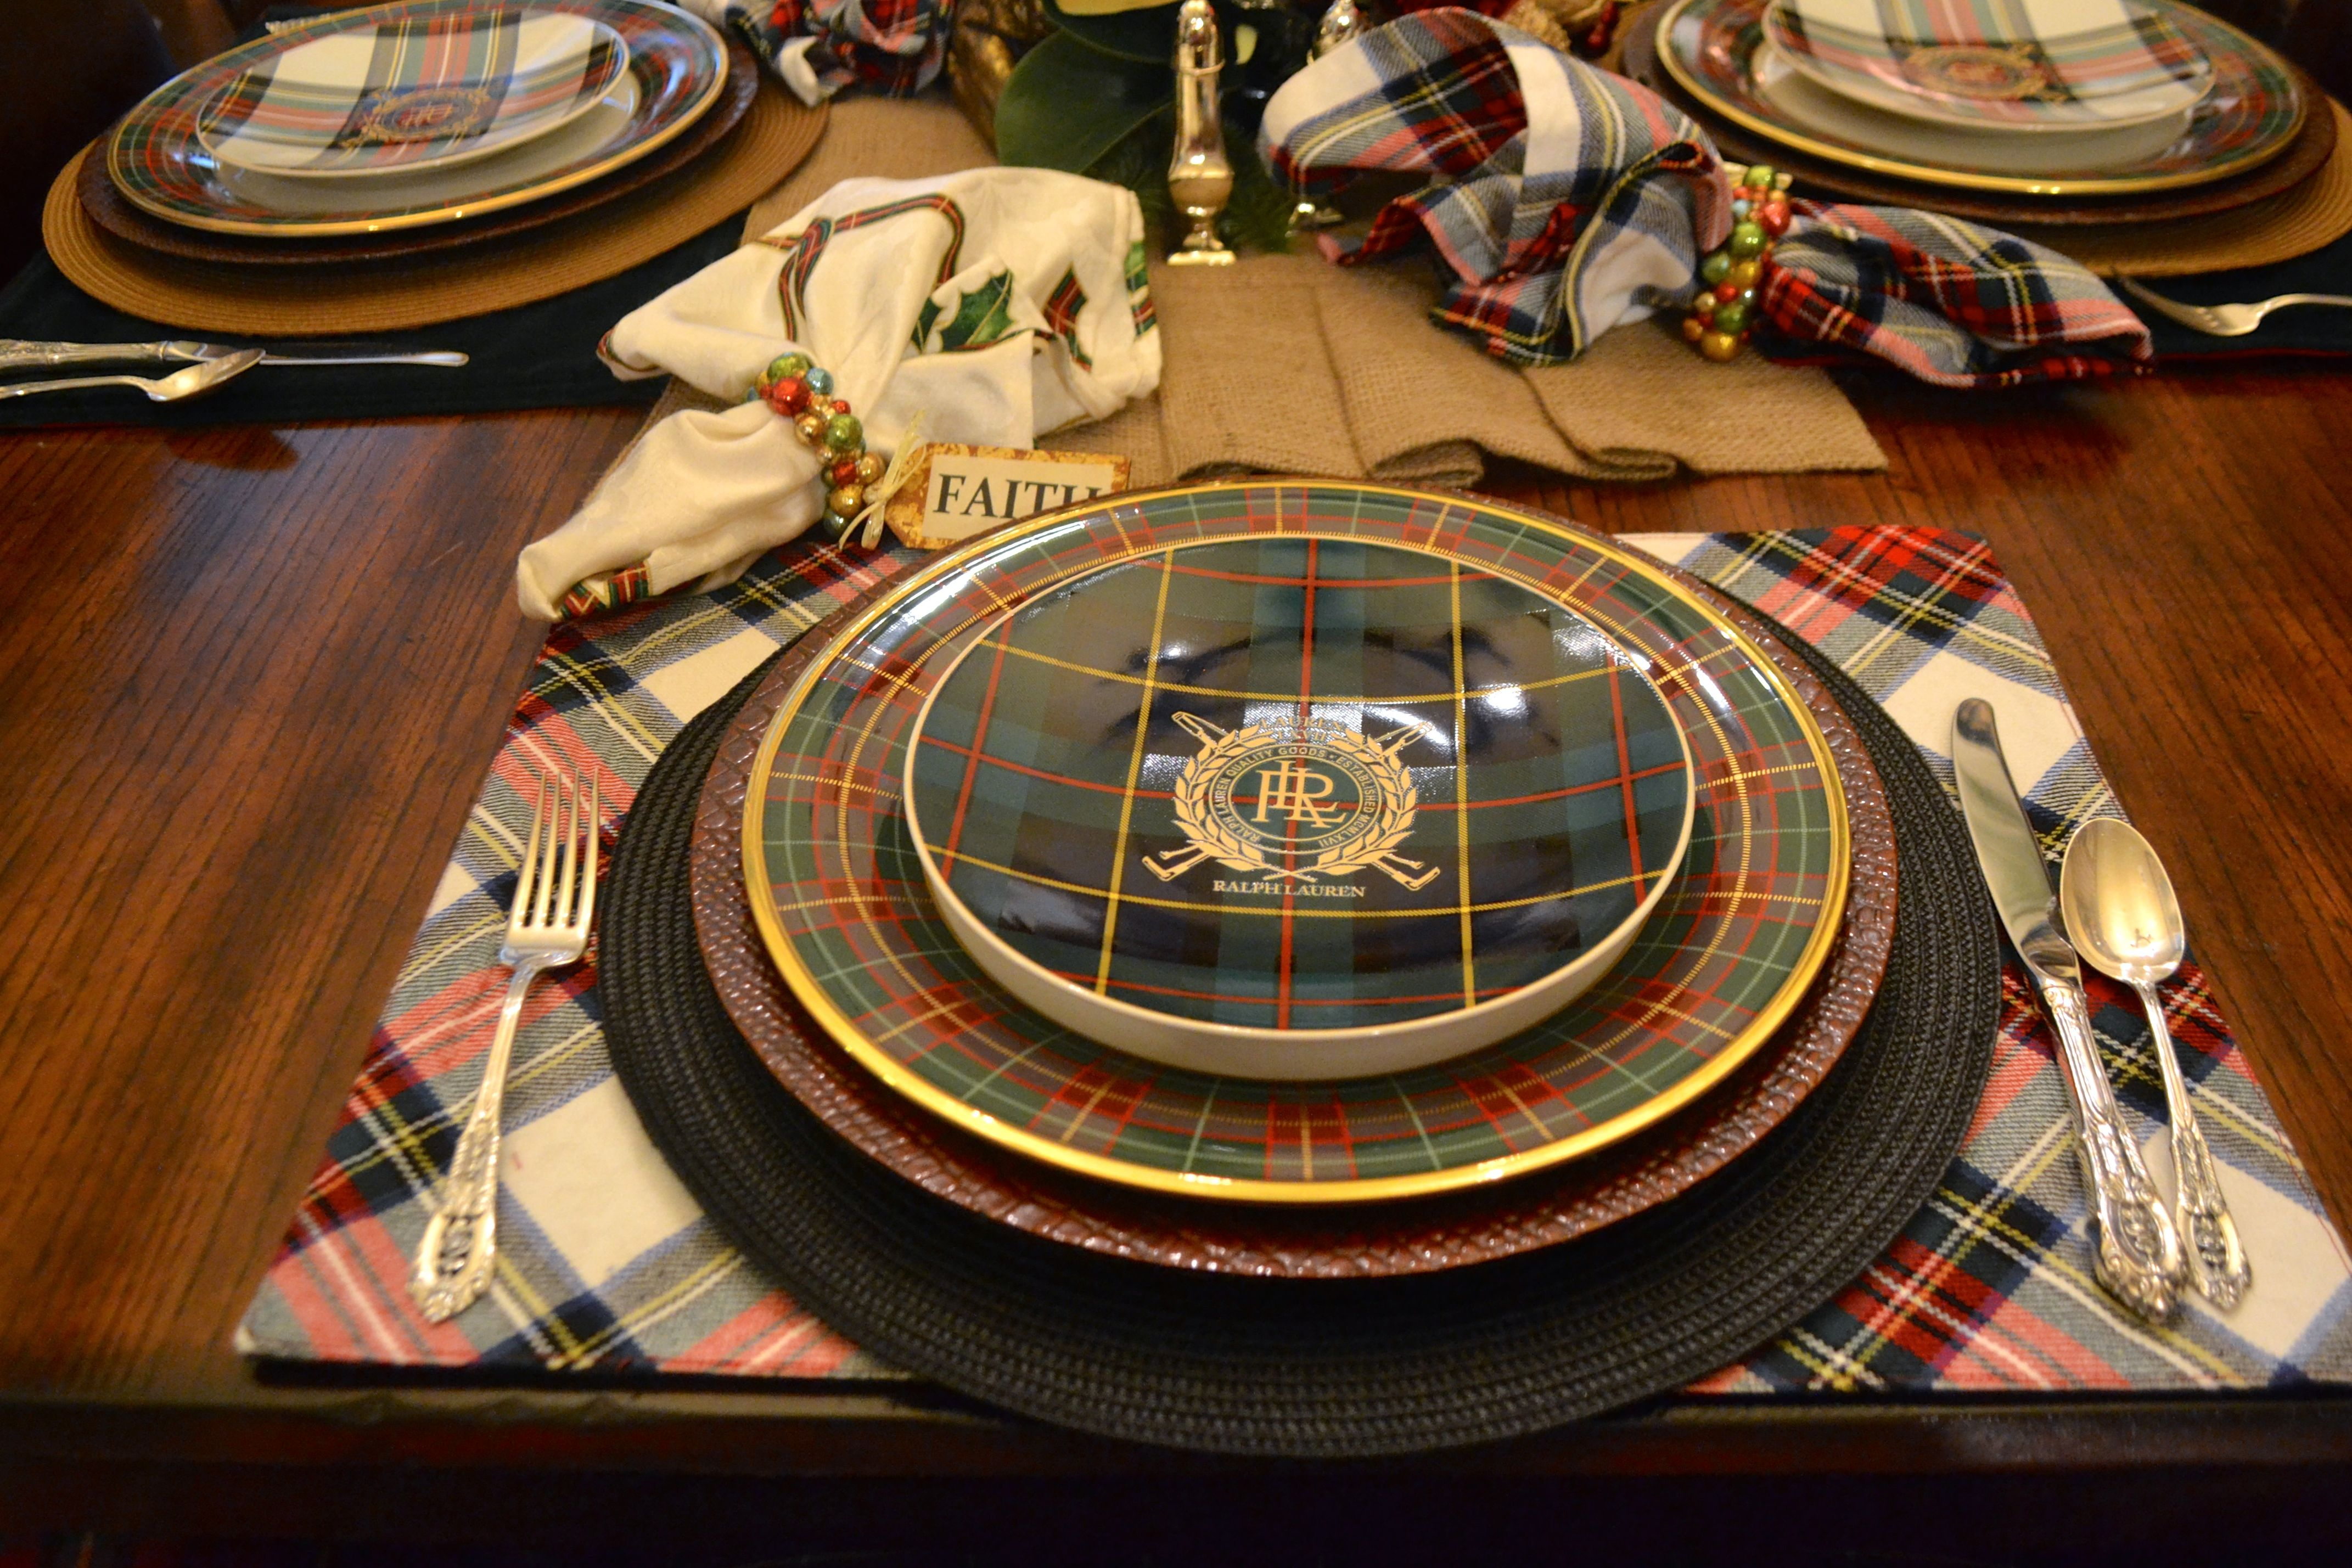 The place settings included Lenox Holiday Tartan service plate and Ralph Lauren Tartan accent plates. Tartan placemats were topped with round black mats ... & Jeffersonu0027s Christmas at Mrs. Ralphu0027s